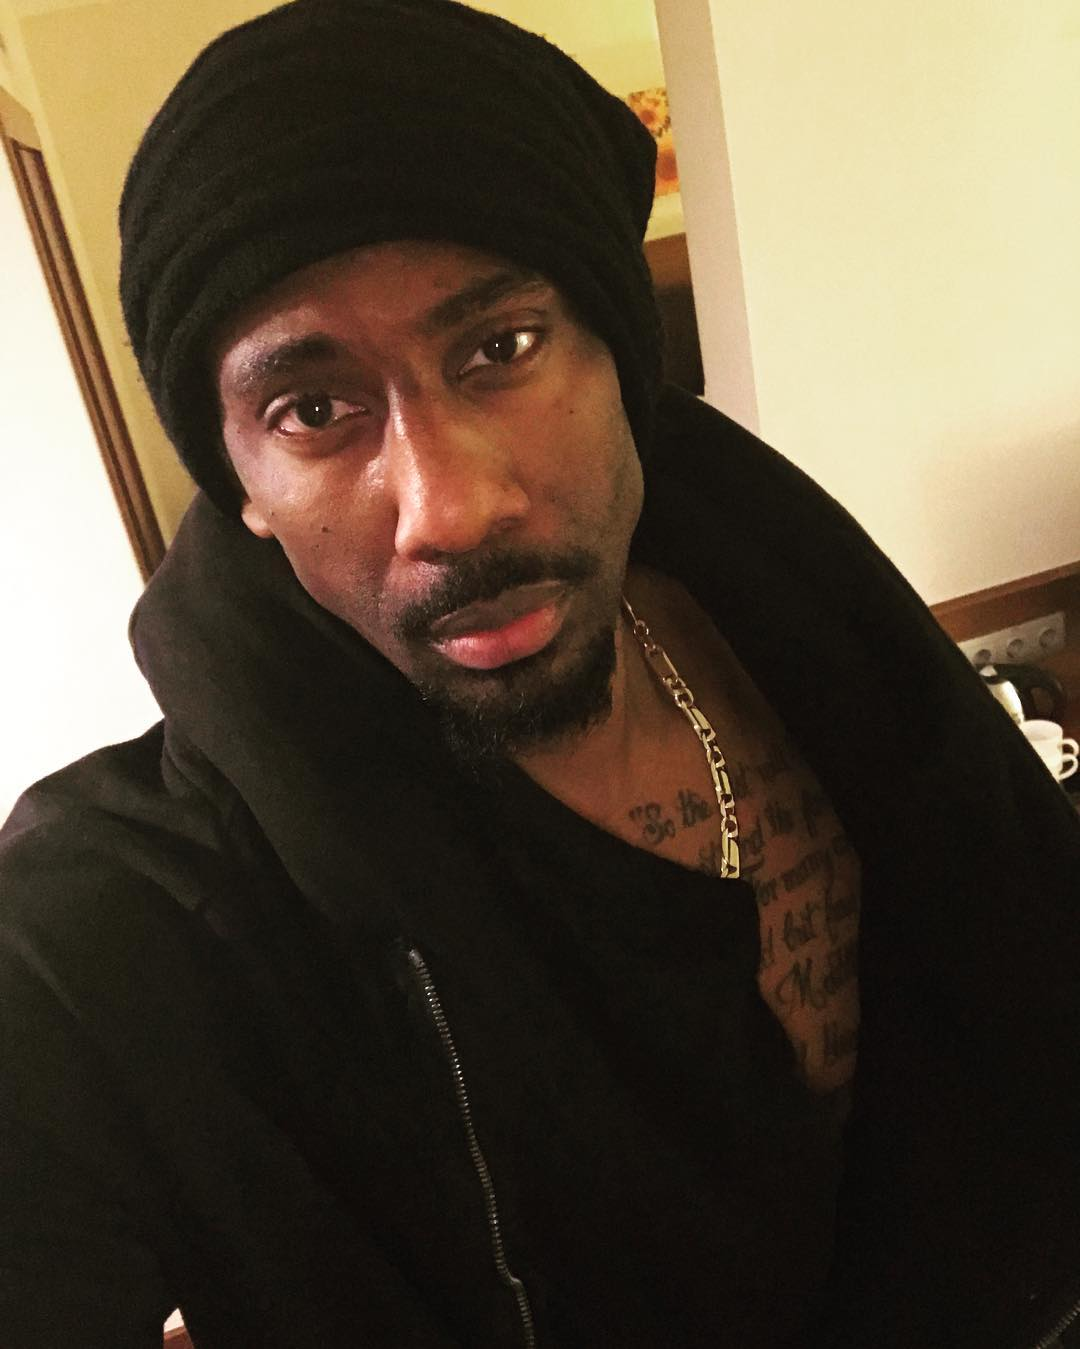 Amare Stoudemire Instagram username